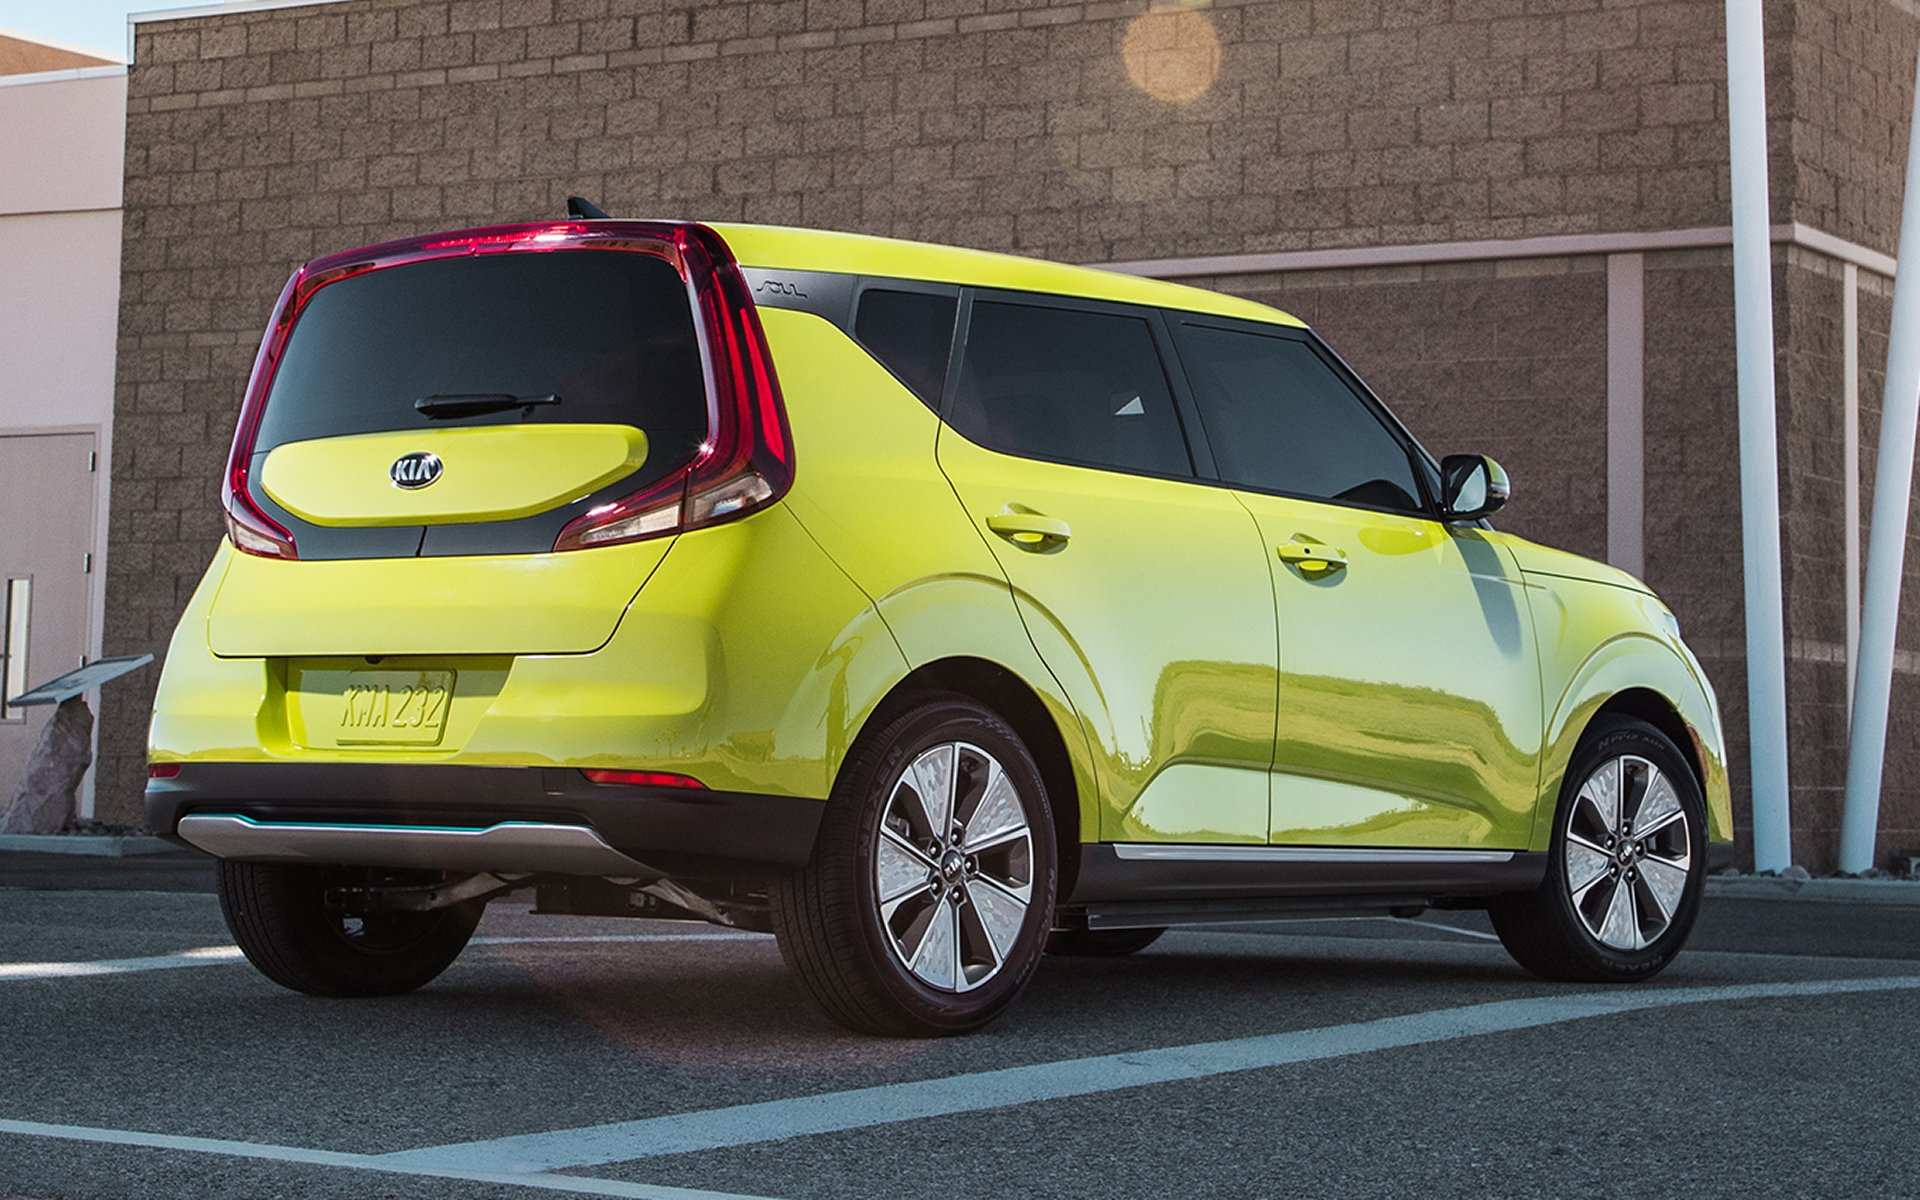 69 Gallery of Kia Electric 2020 Specs and Review by Kia Electric 2020